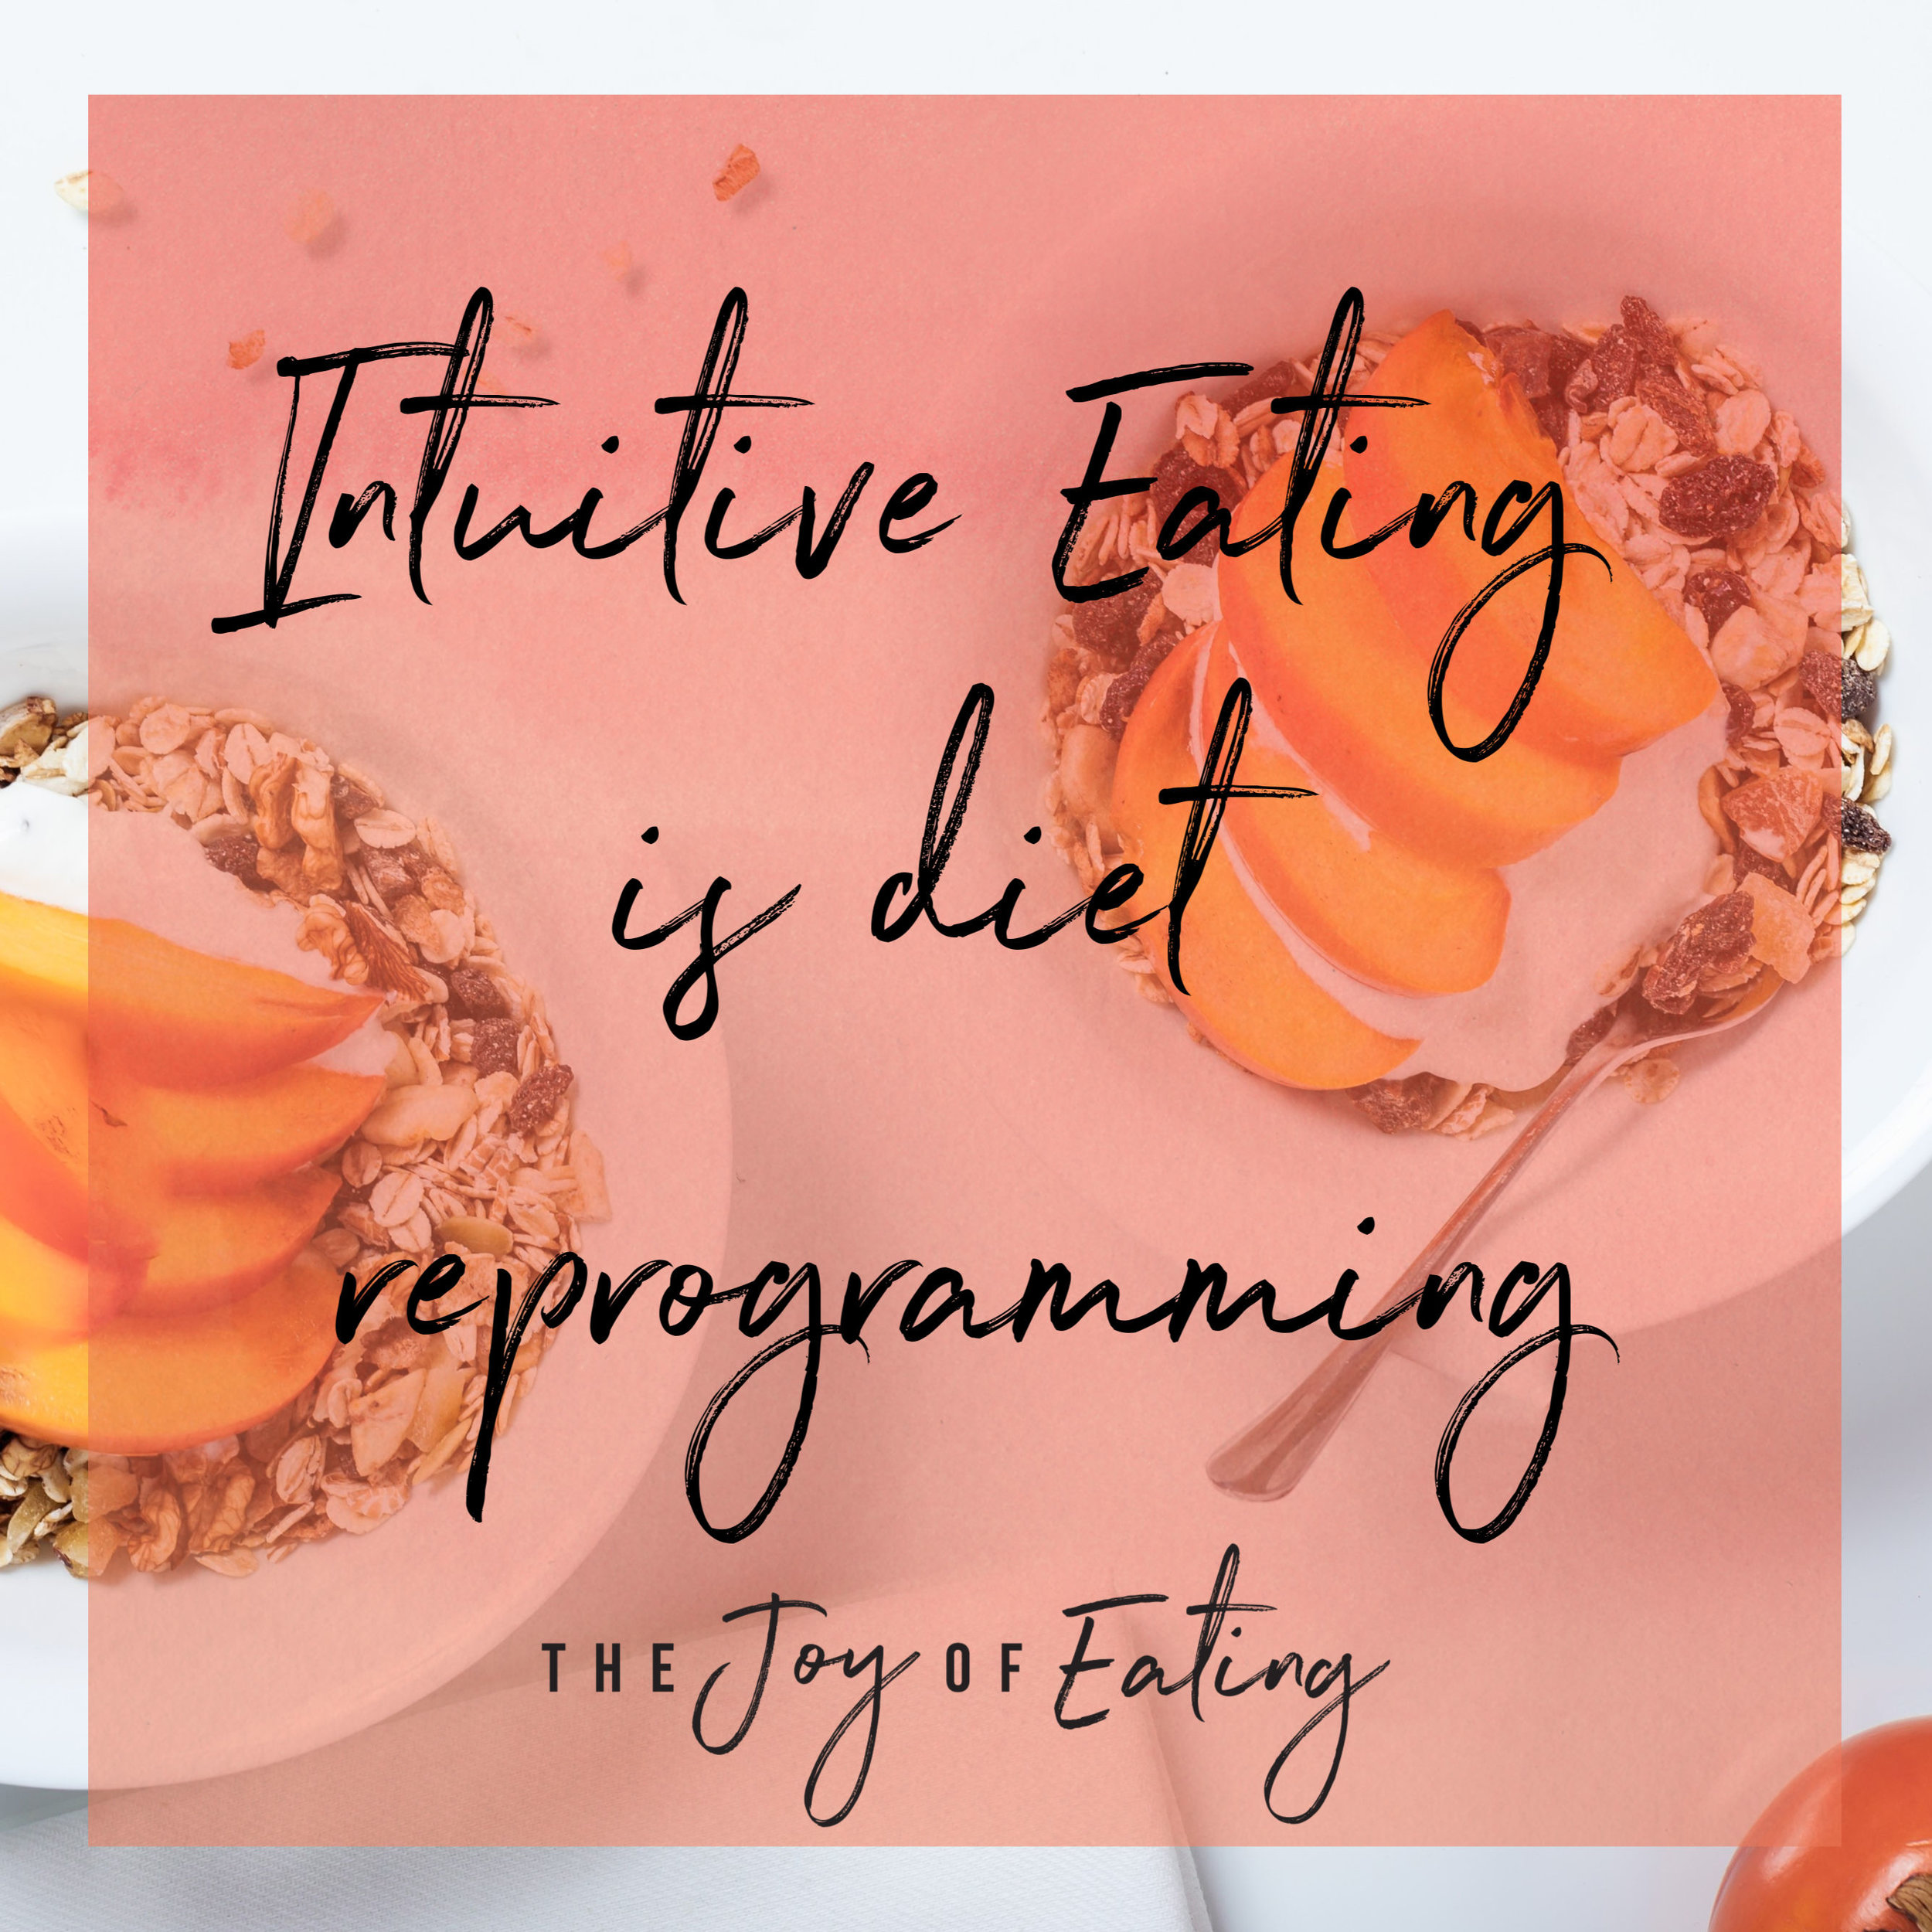 Intuitive eating is diet reprogramming